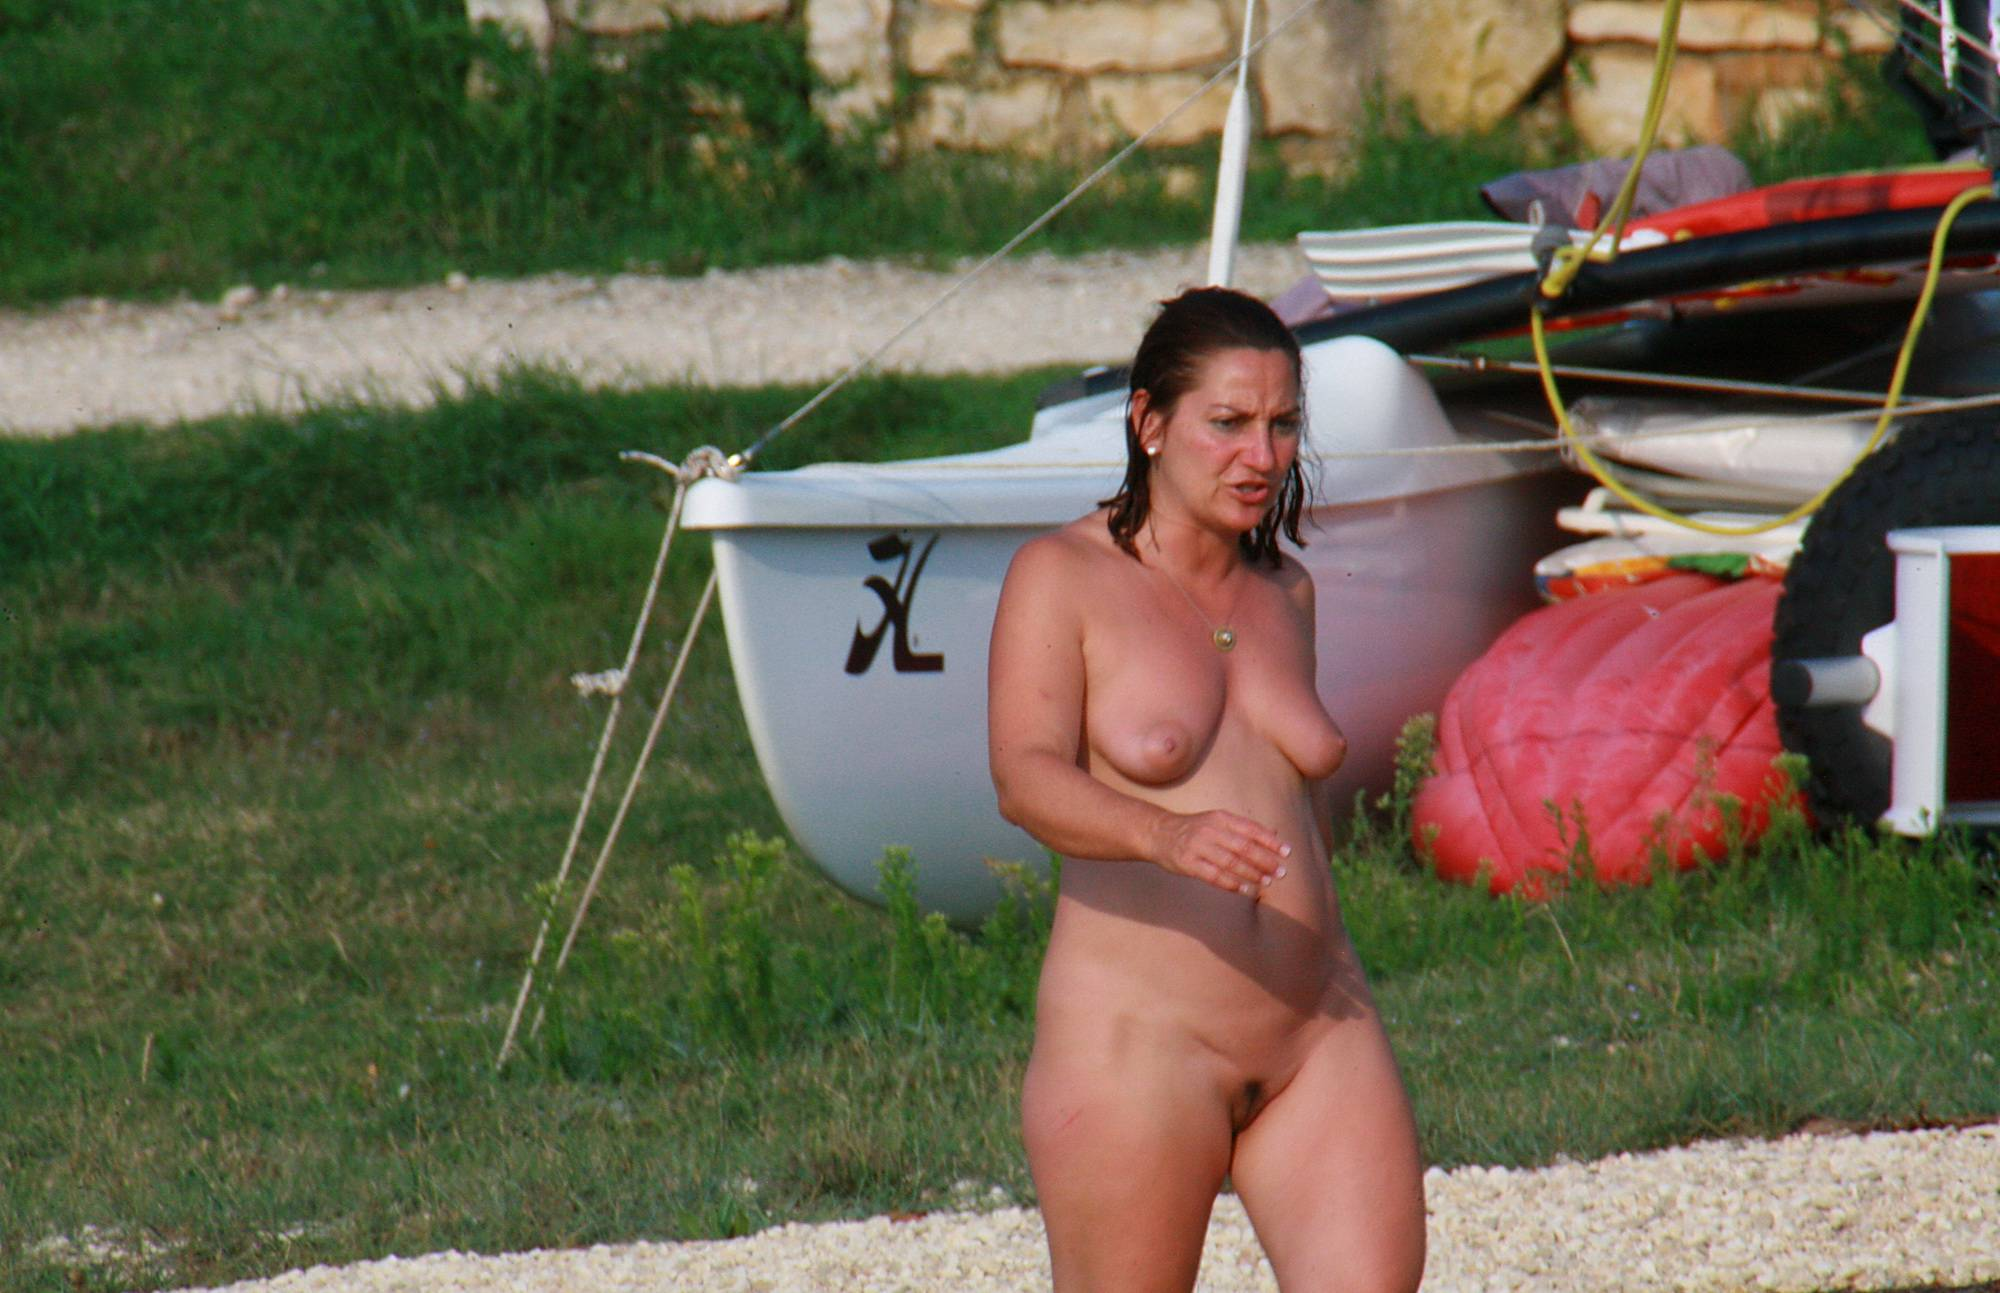 Calm Naturist Relaxation - 2